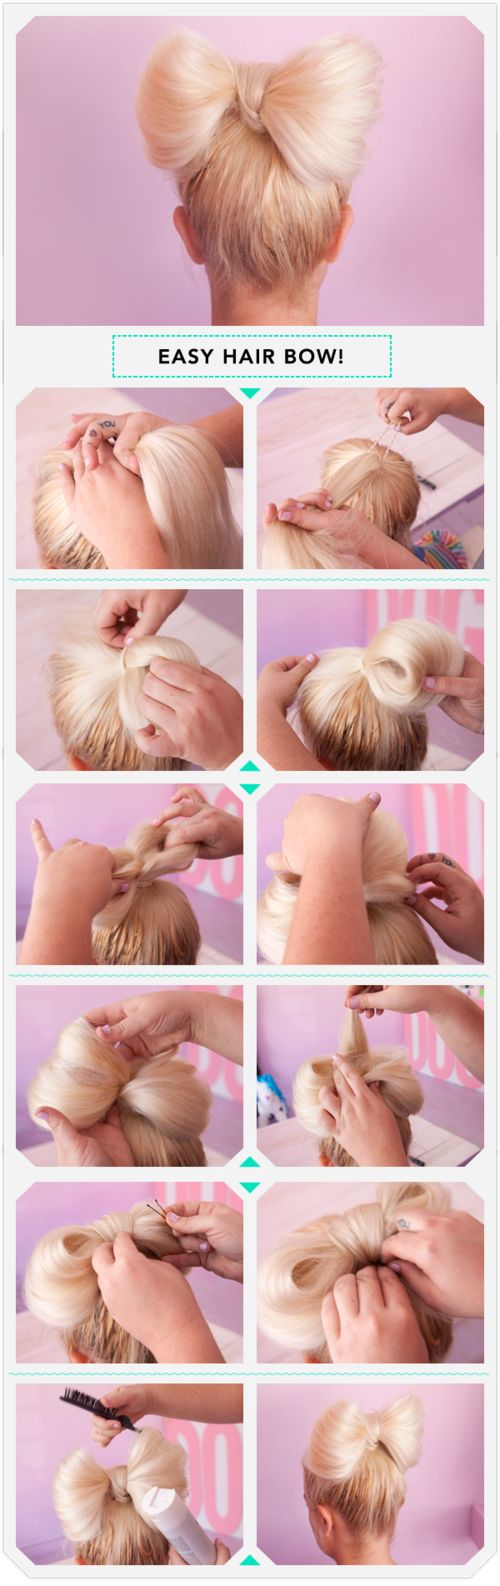 We say this #hairbow is THE #hairstyle that every girl should try at least once in her life! Why grow up when you can stay young forever?